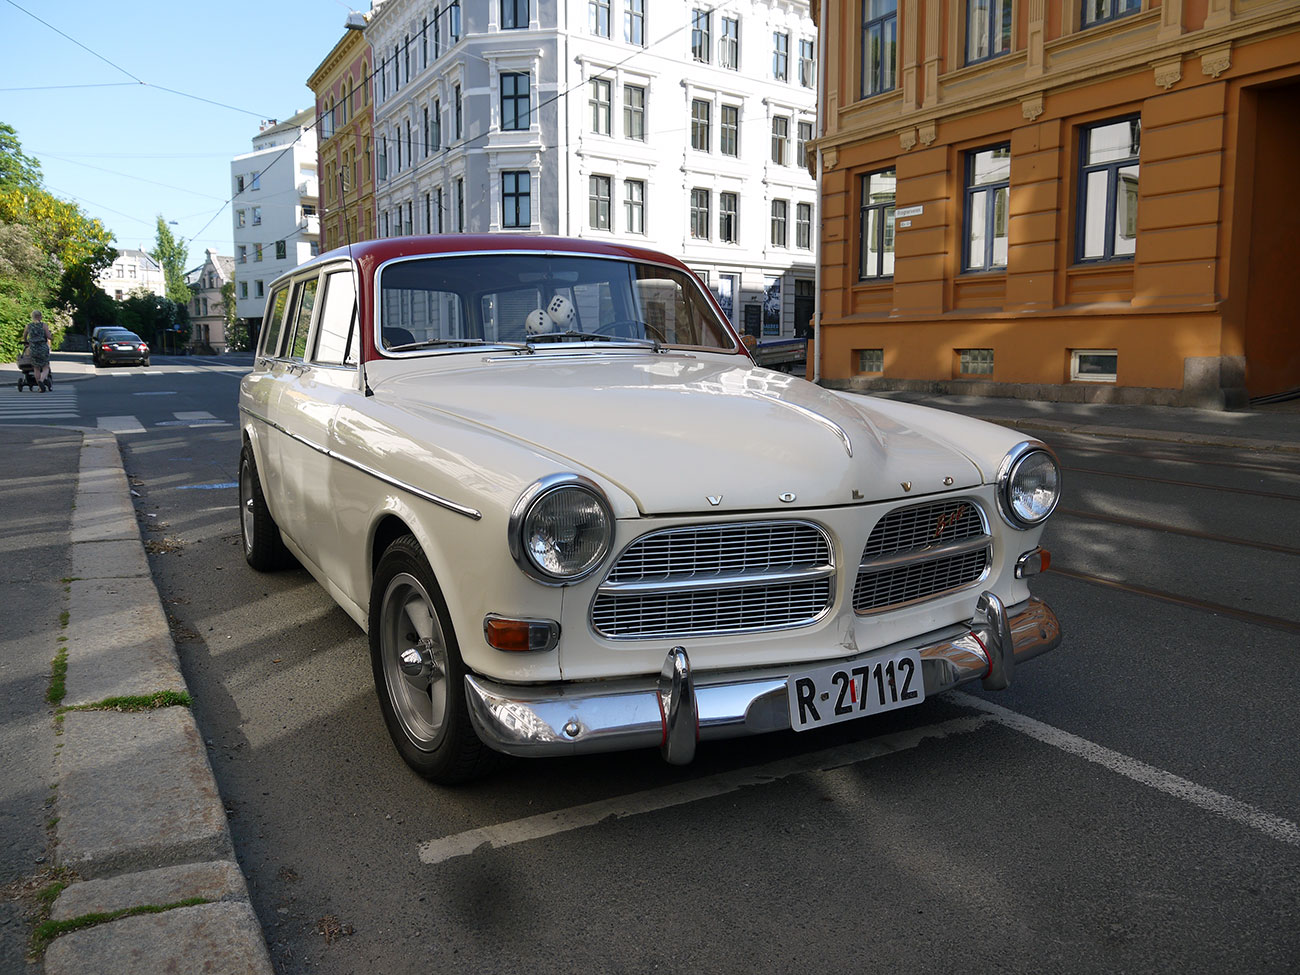 1965 Volvo Amazon 121 station wagon estate